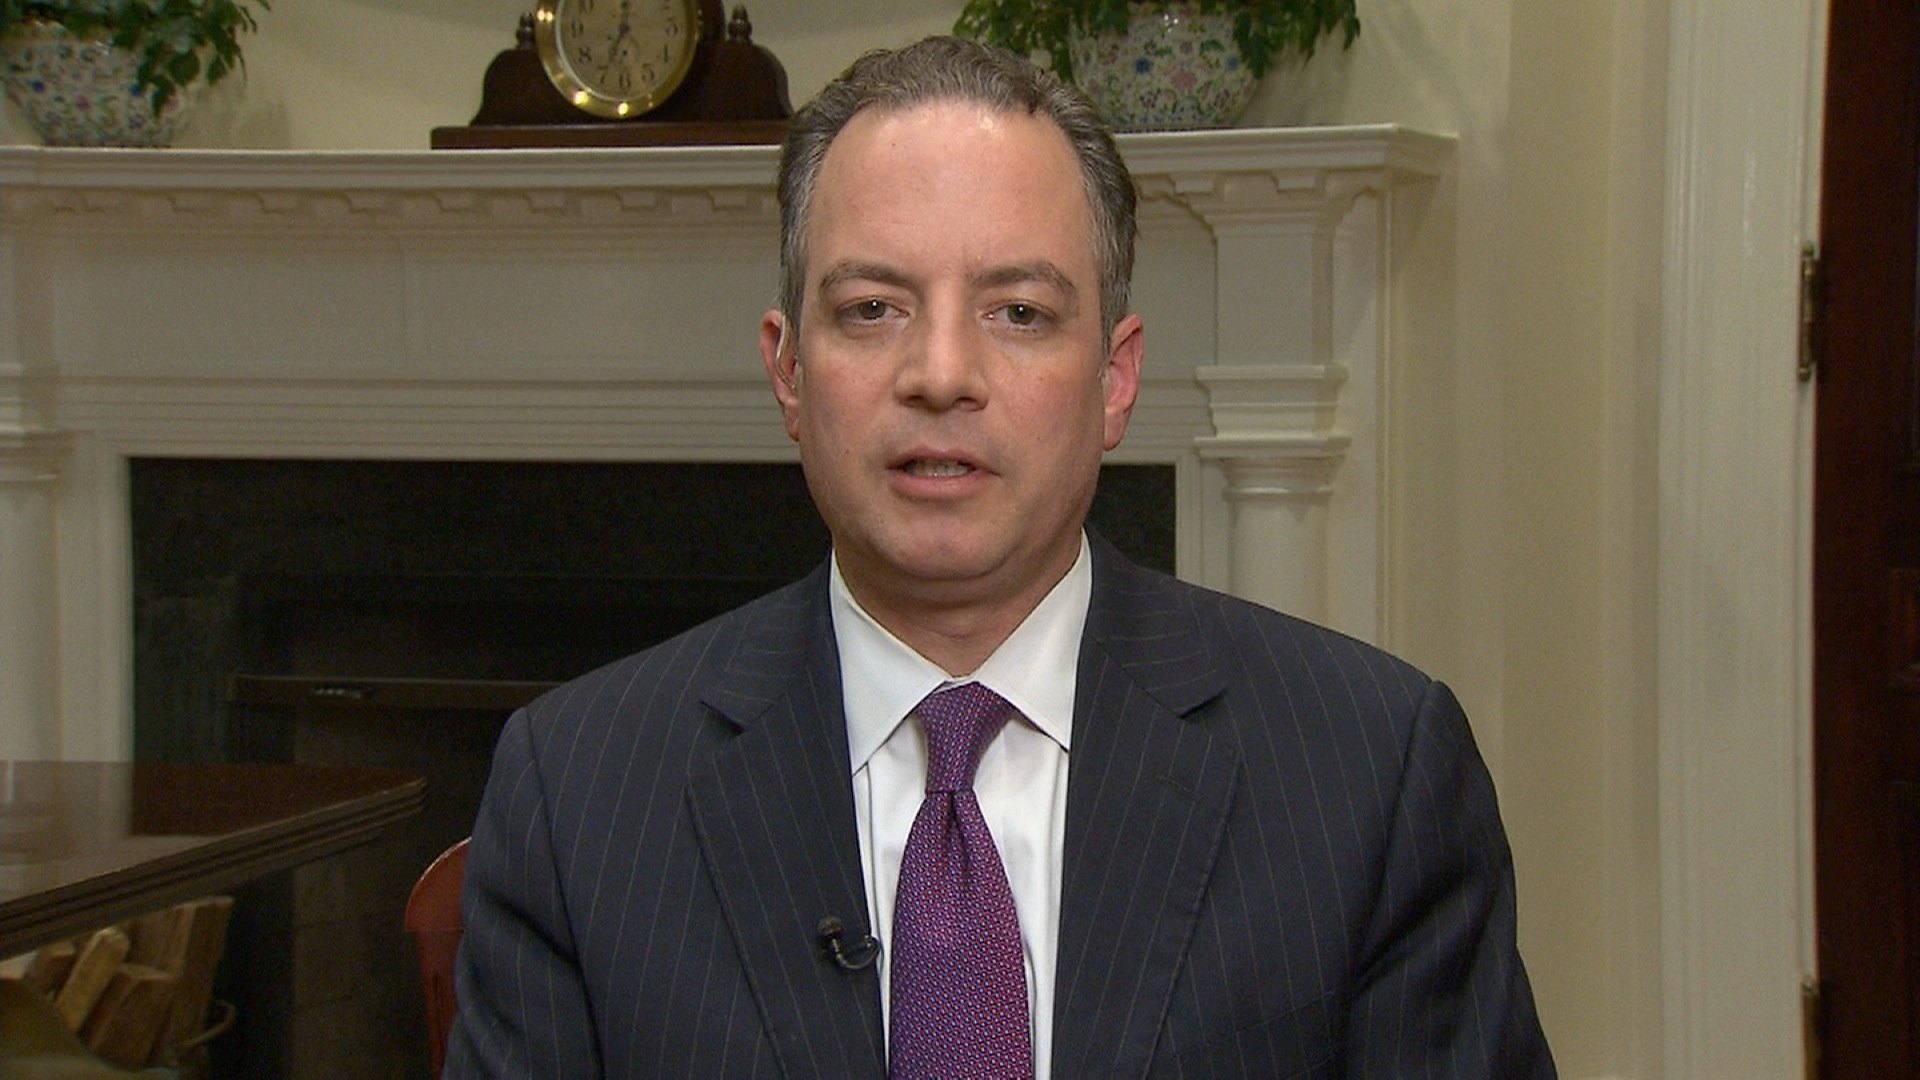 Reince Priebus Replaced by General John Kelly As Chief Of Staff